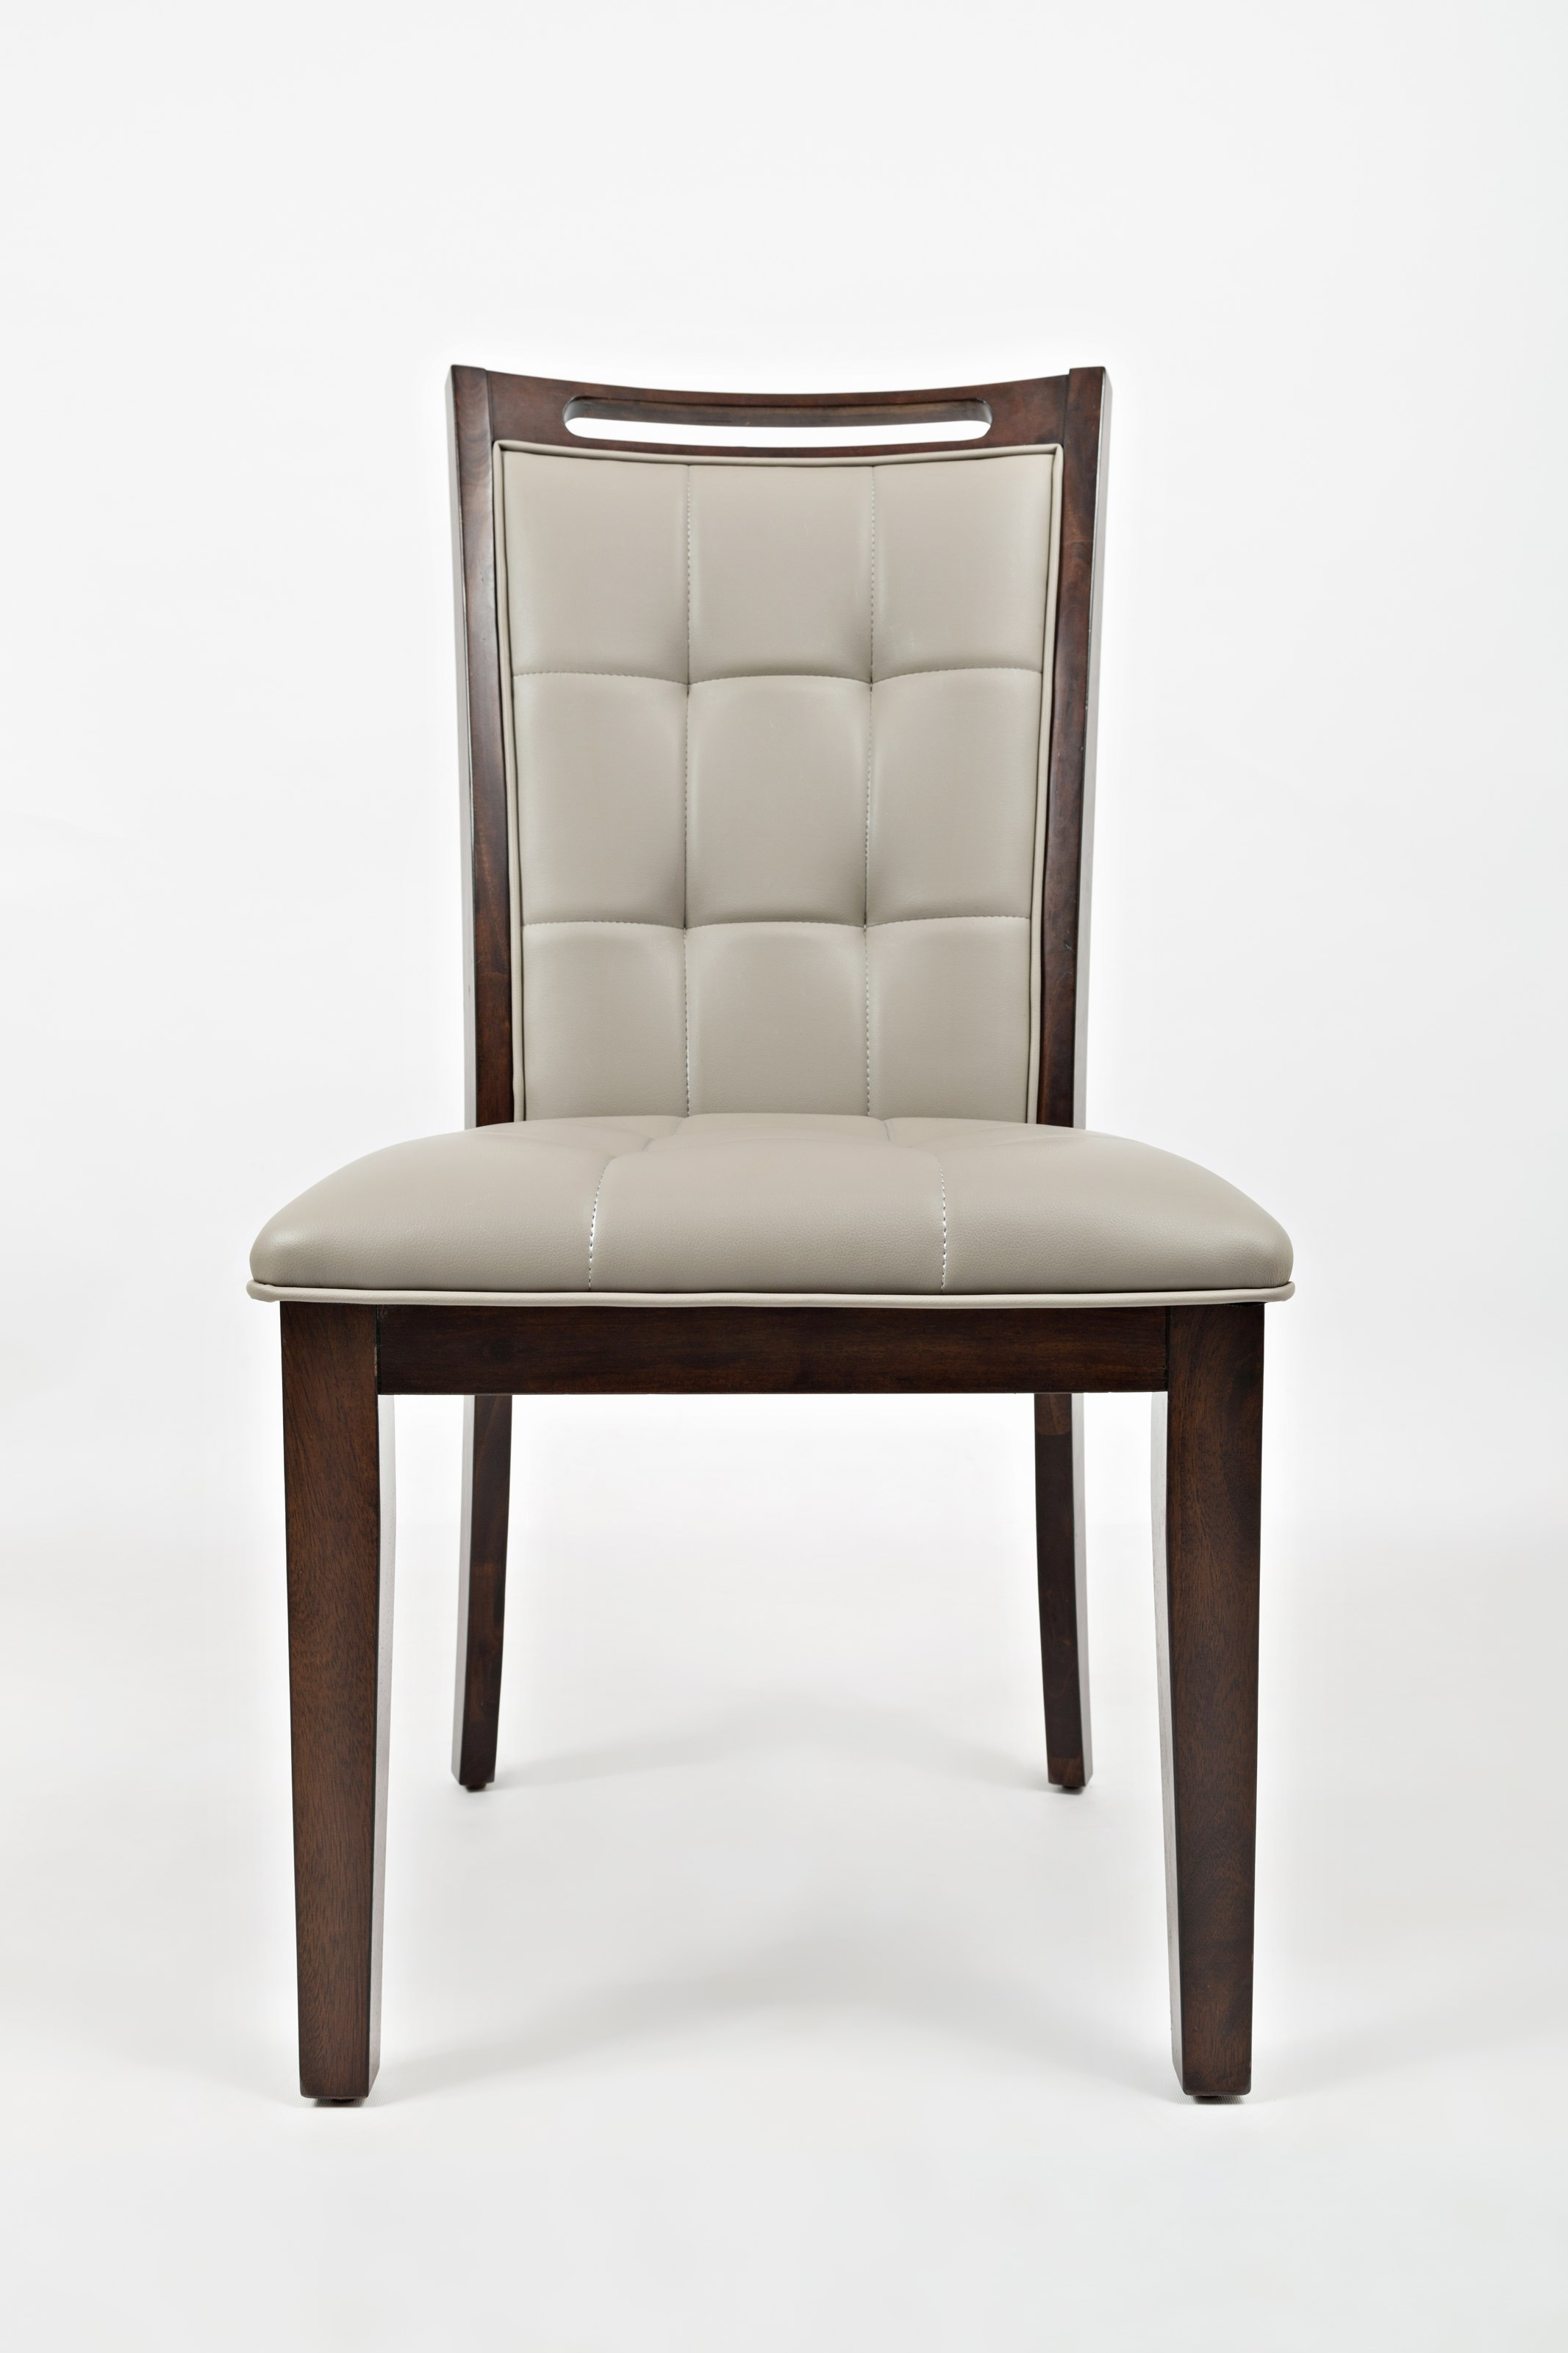 Jofran manchester upholstered dining chair vandrie home